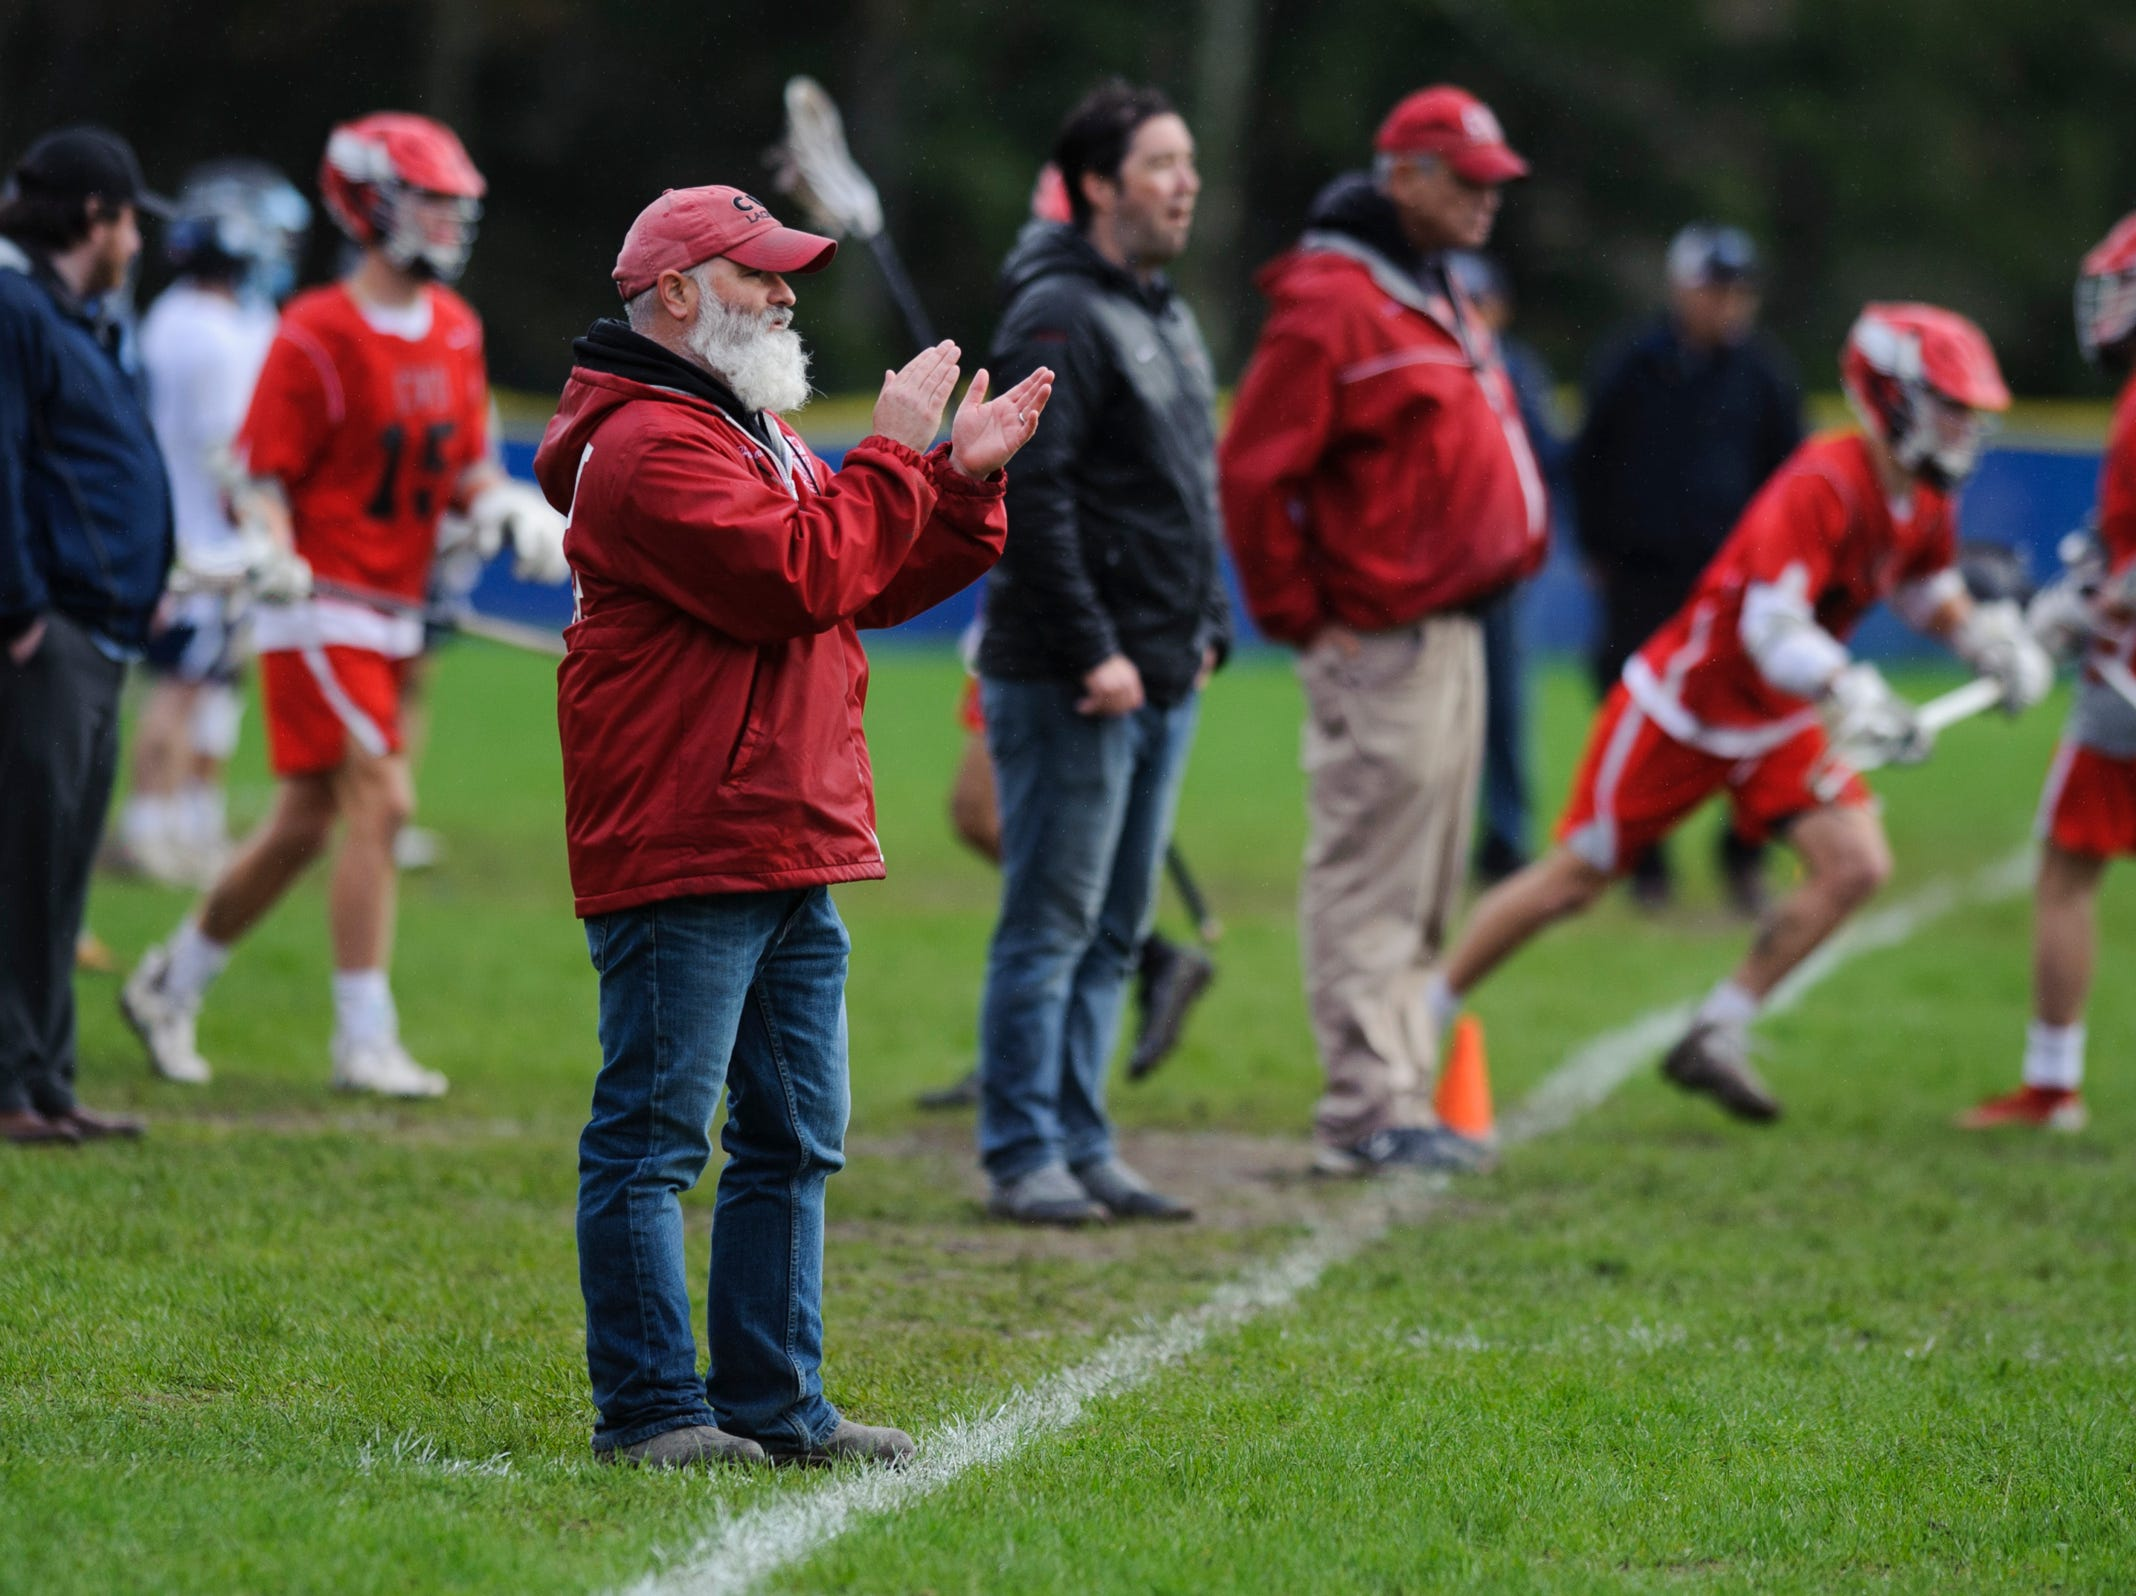 CVU head coach Dave Trevithick cheers for the team on the field during the boys lacrosse game between the Champlain Valley Union Redhawks and the Mount Mansfield Cougars at MMU High School on Tuesday afternoon May 14, 2019 in Jericho, Vermont.